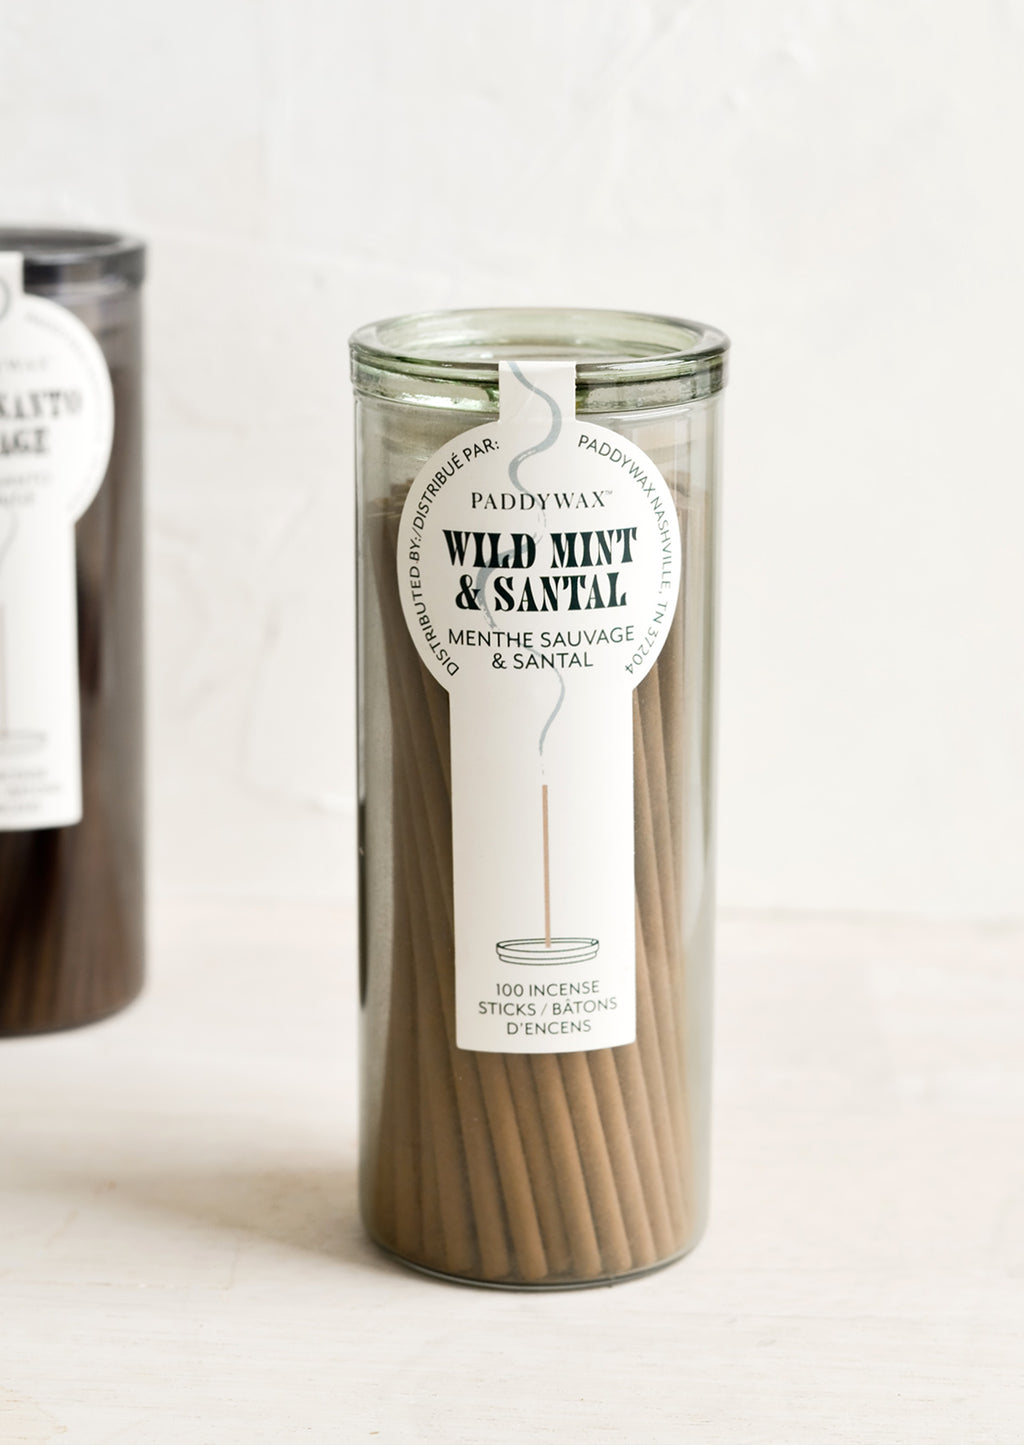 Wild Mint & Santal: A green glass jar with incense sticks in wild mint scent.